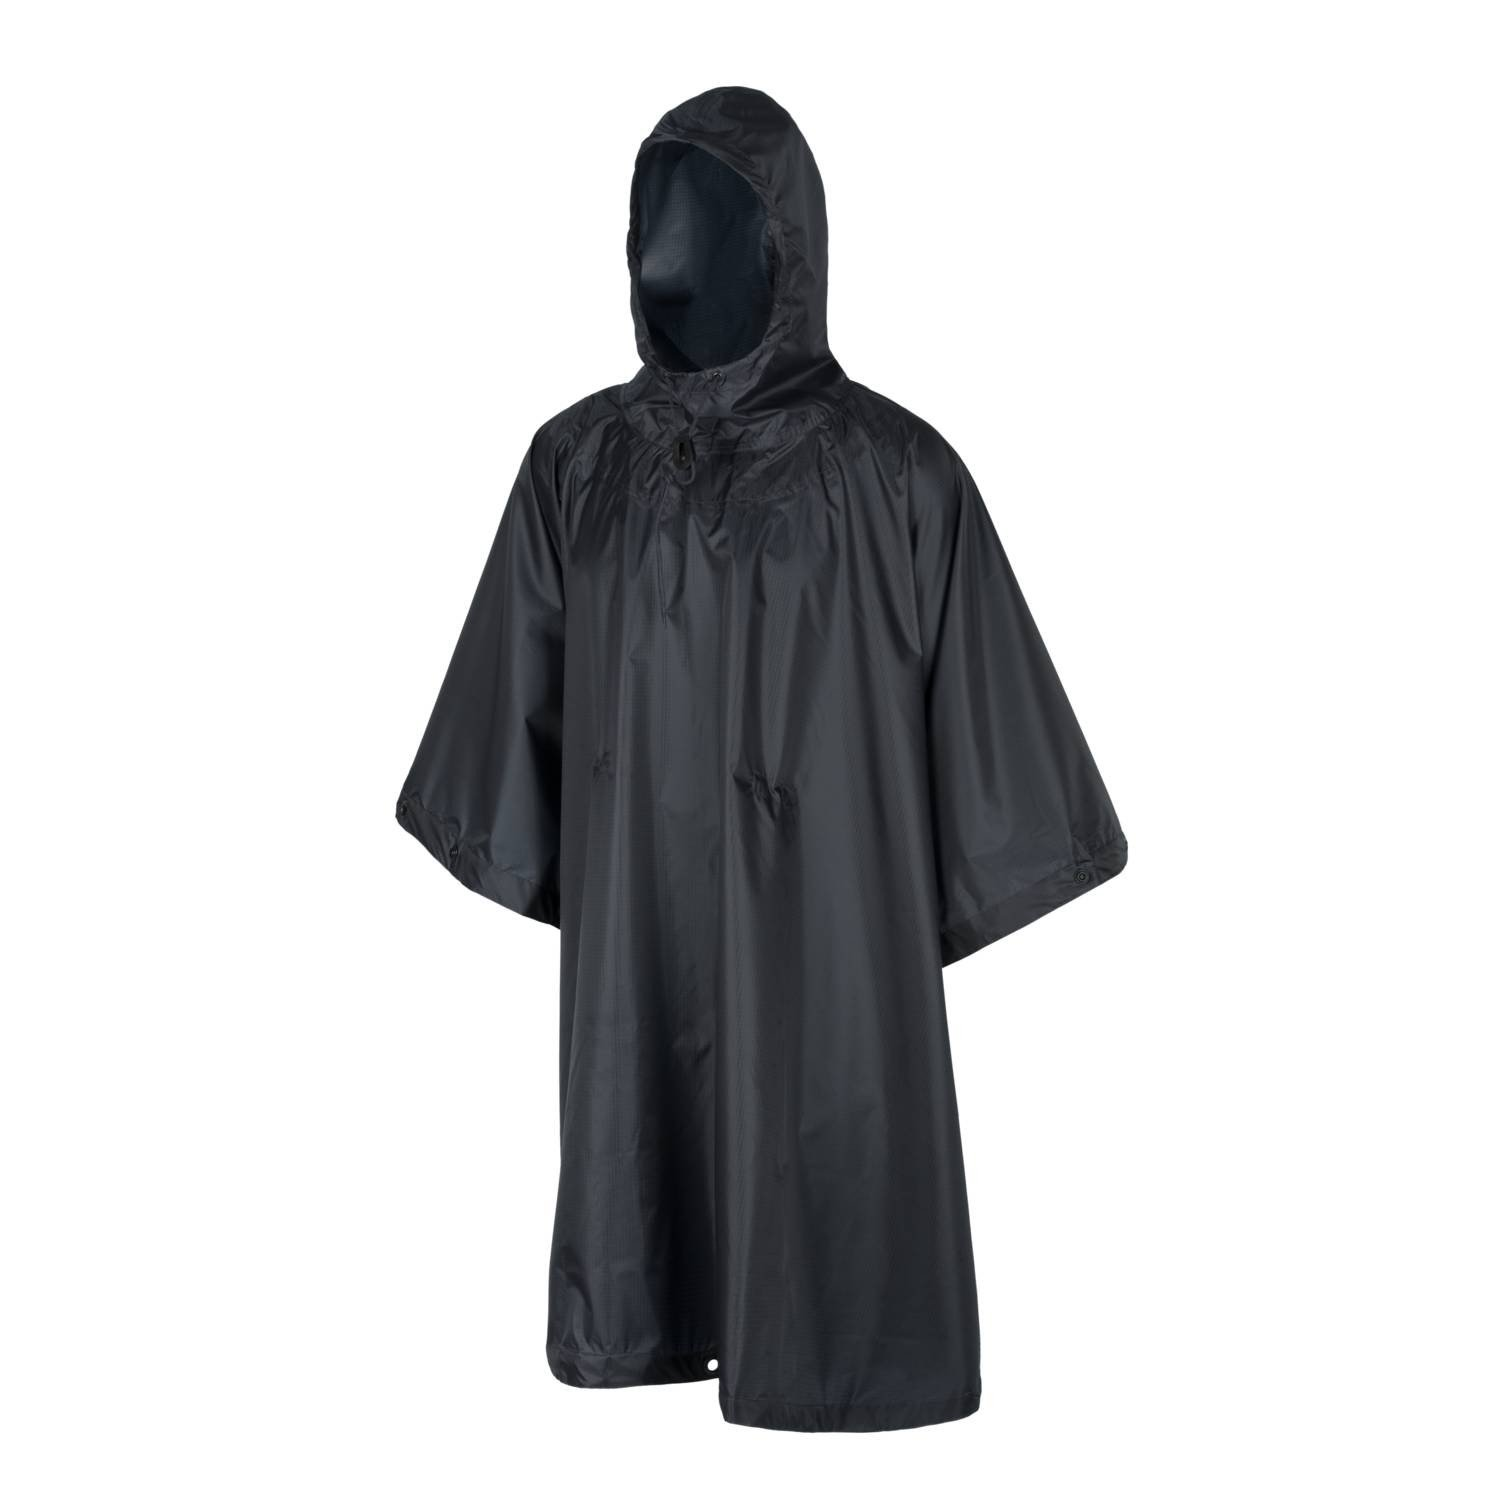 PONCHO U.S. MODEL - Navy Blue